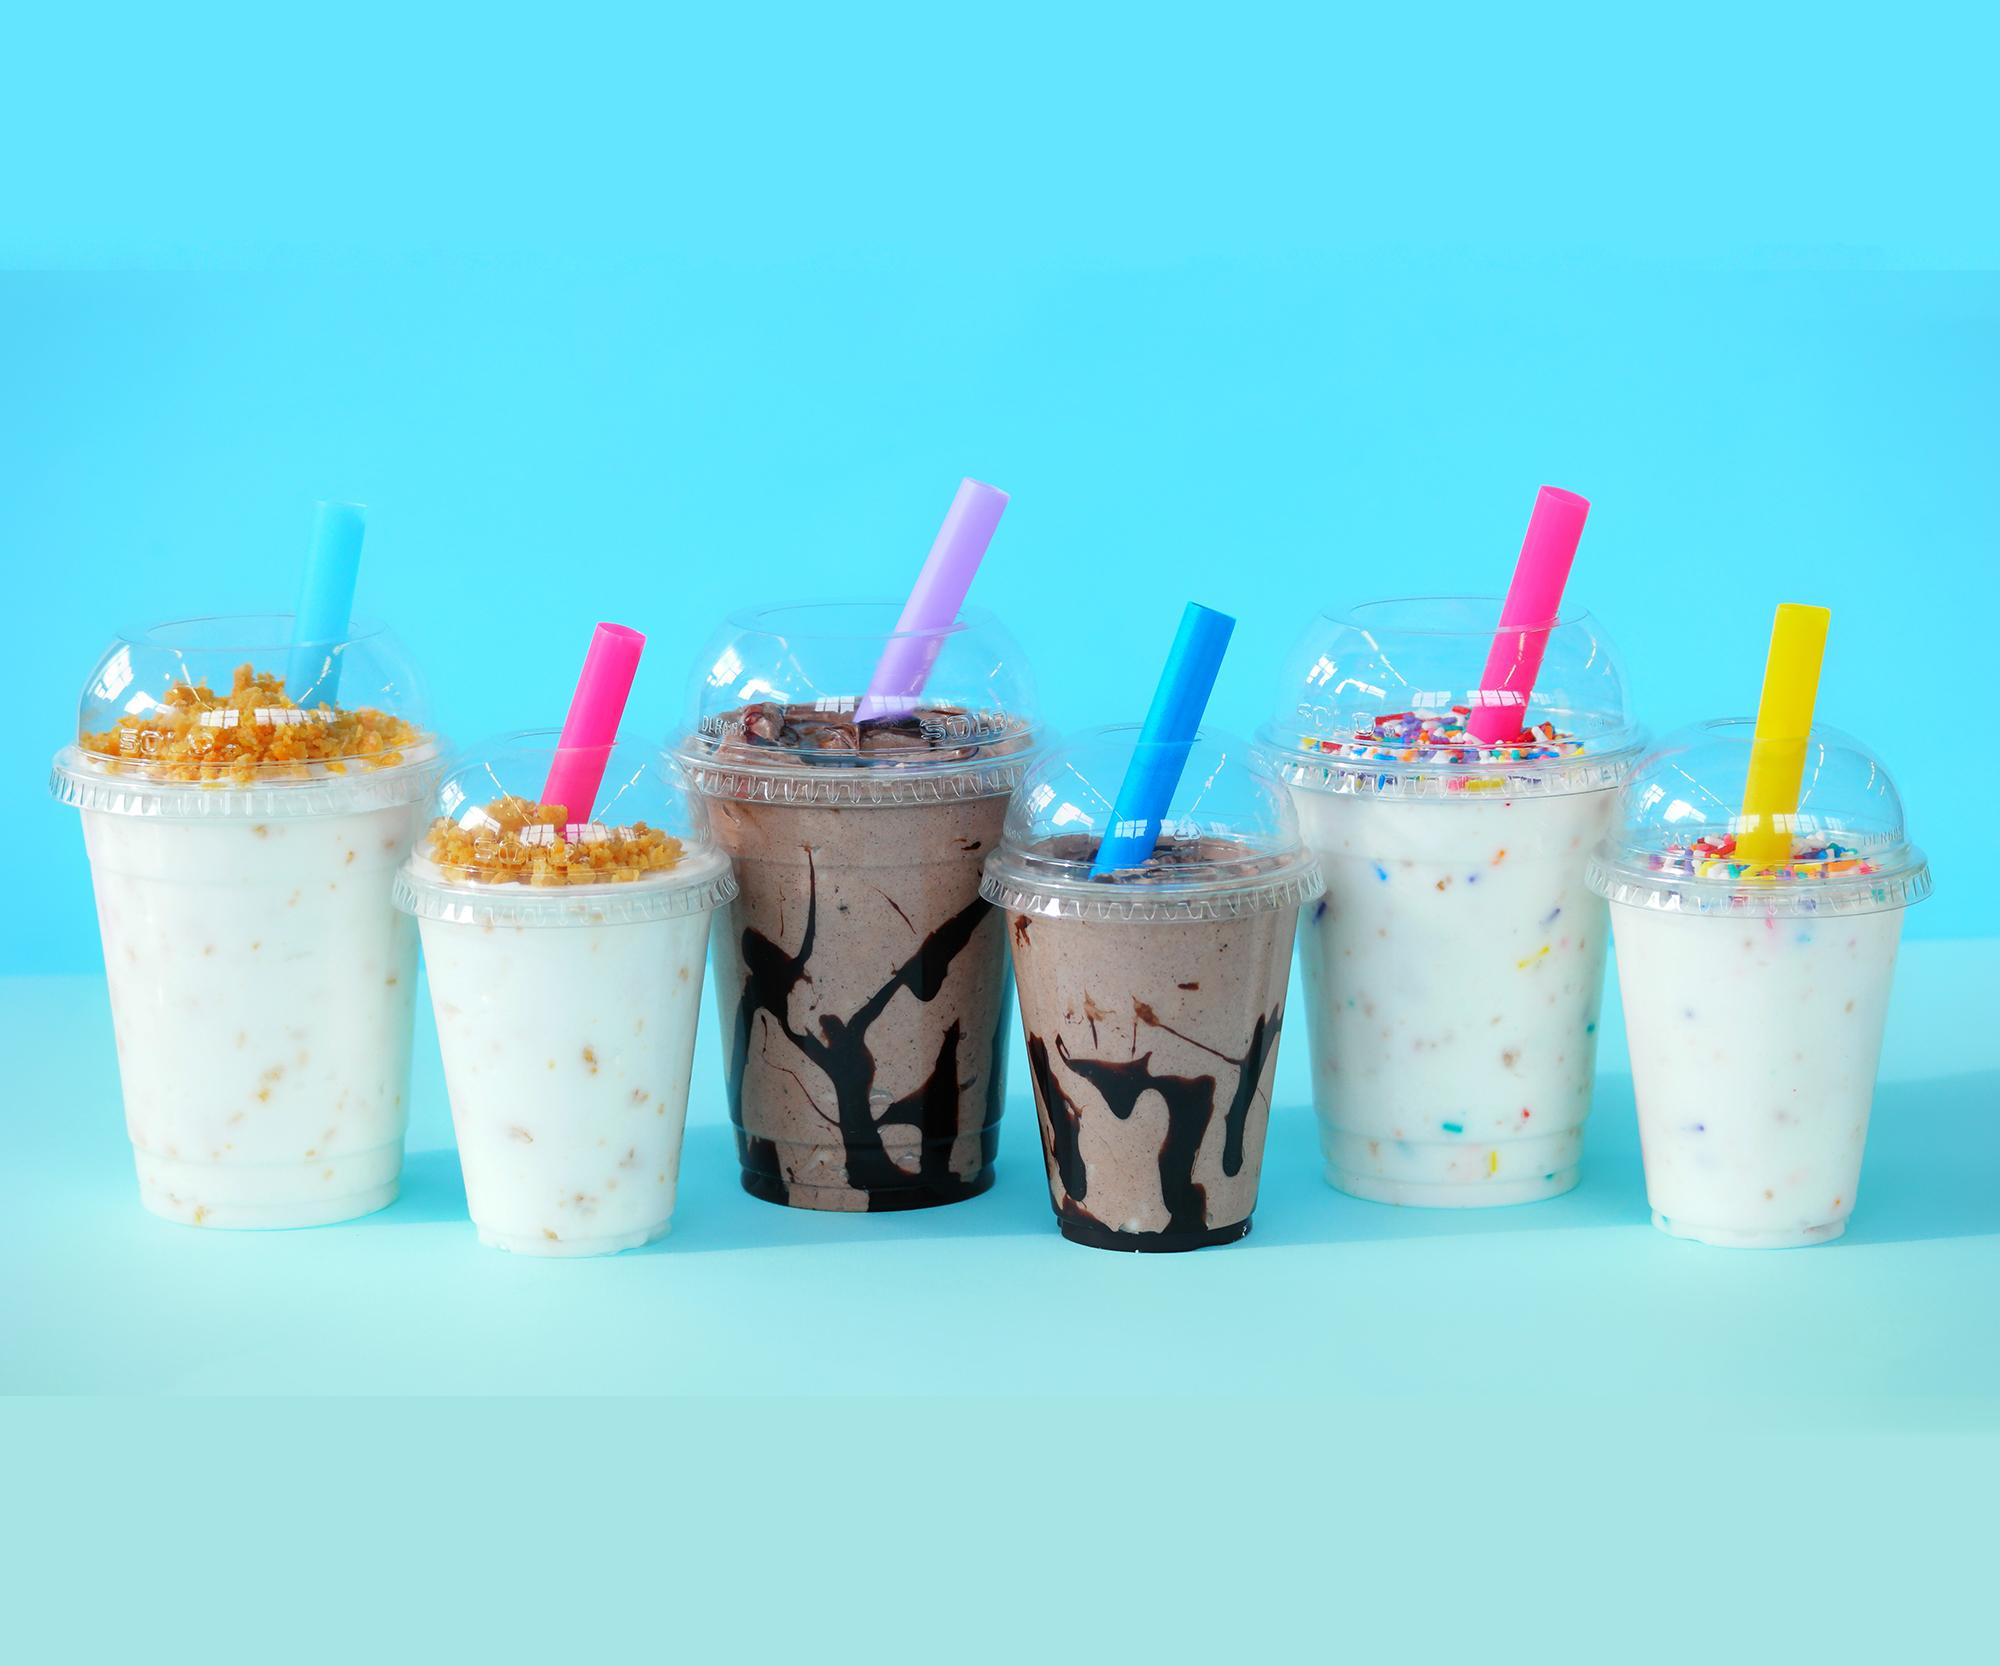 The regular quakes are $9 and BabyQuakes/BabyShakes are $6. (Image: Courtesy Milk Bar)<p></p>